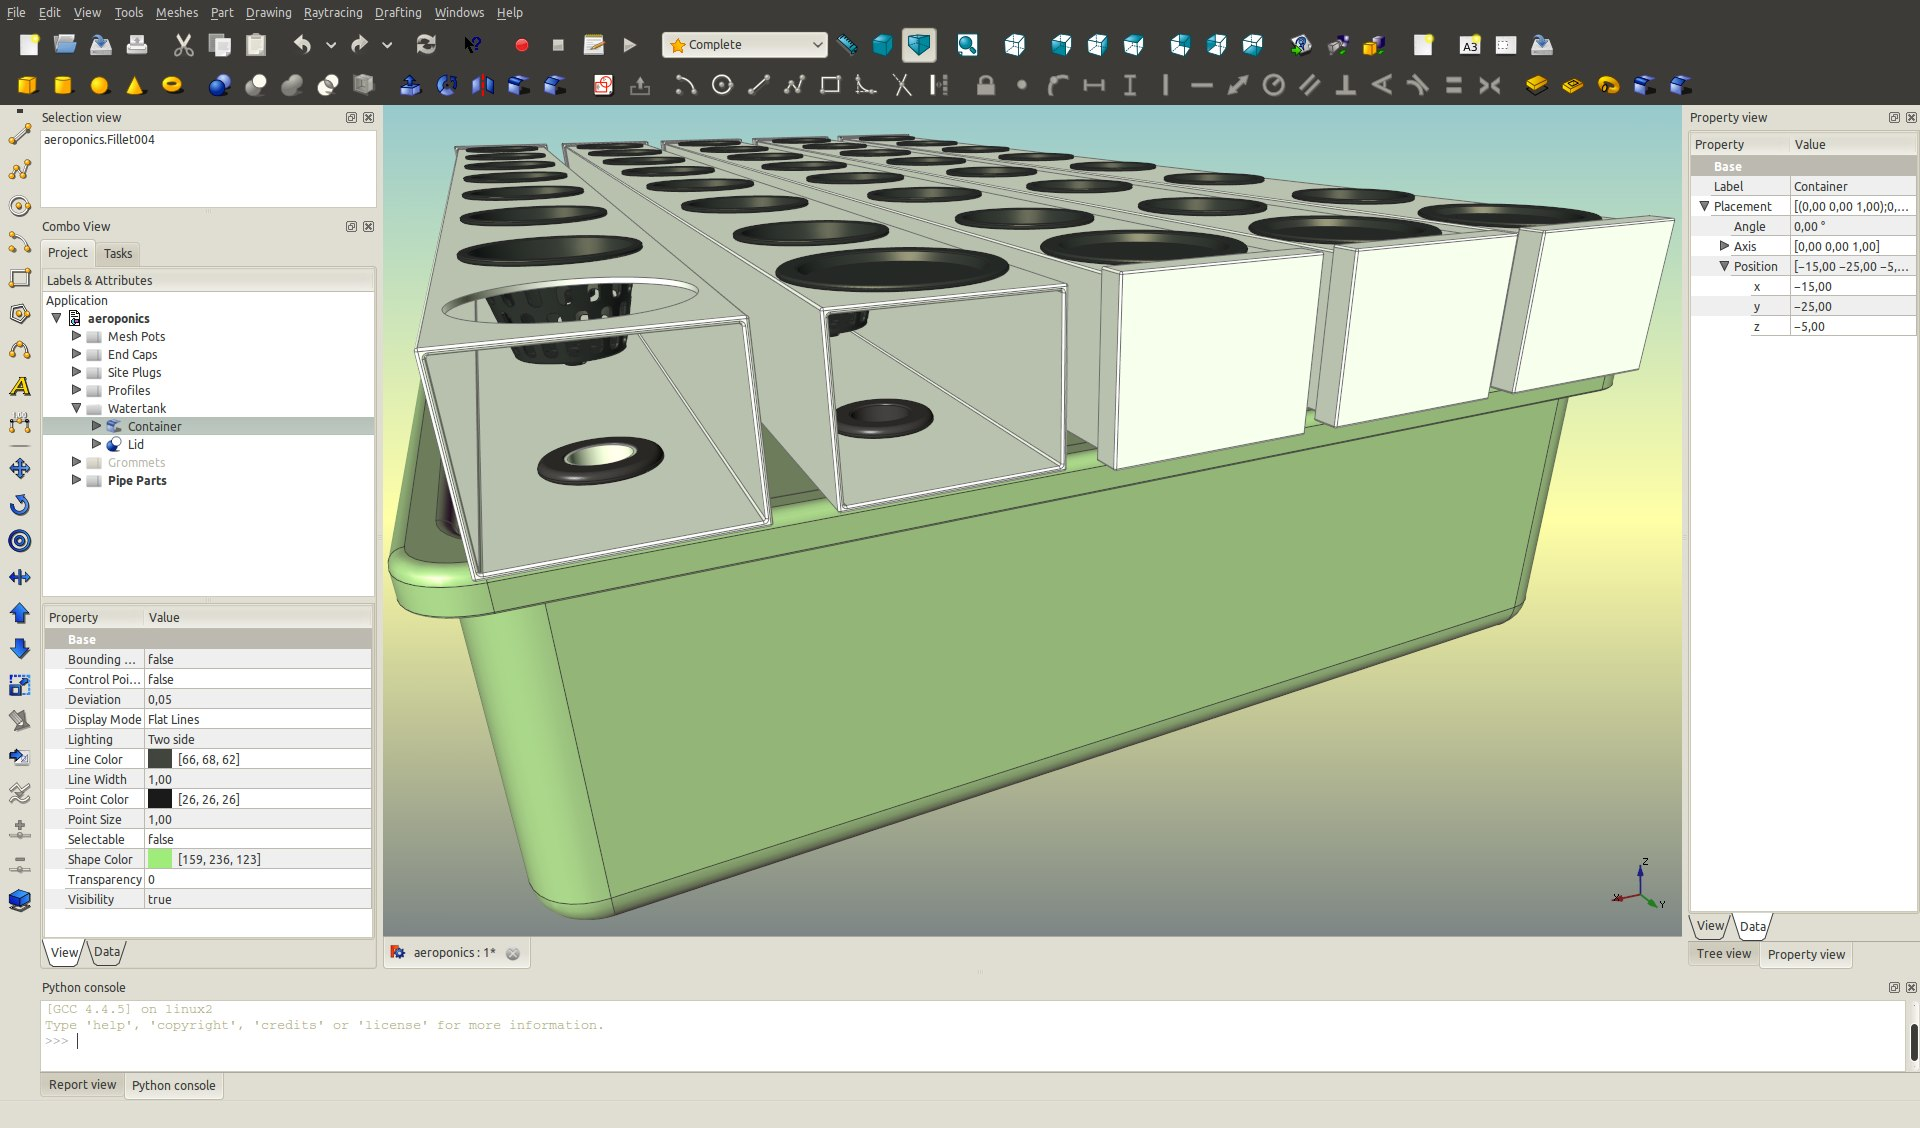 File freecad aeroponic freecad documentation Free 3d cad software